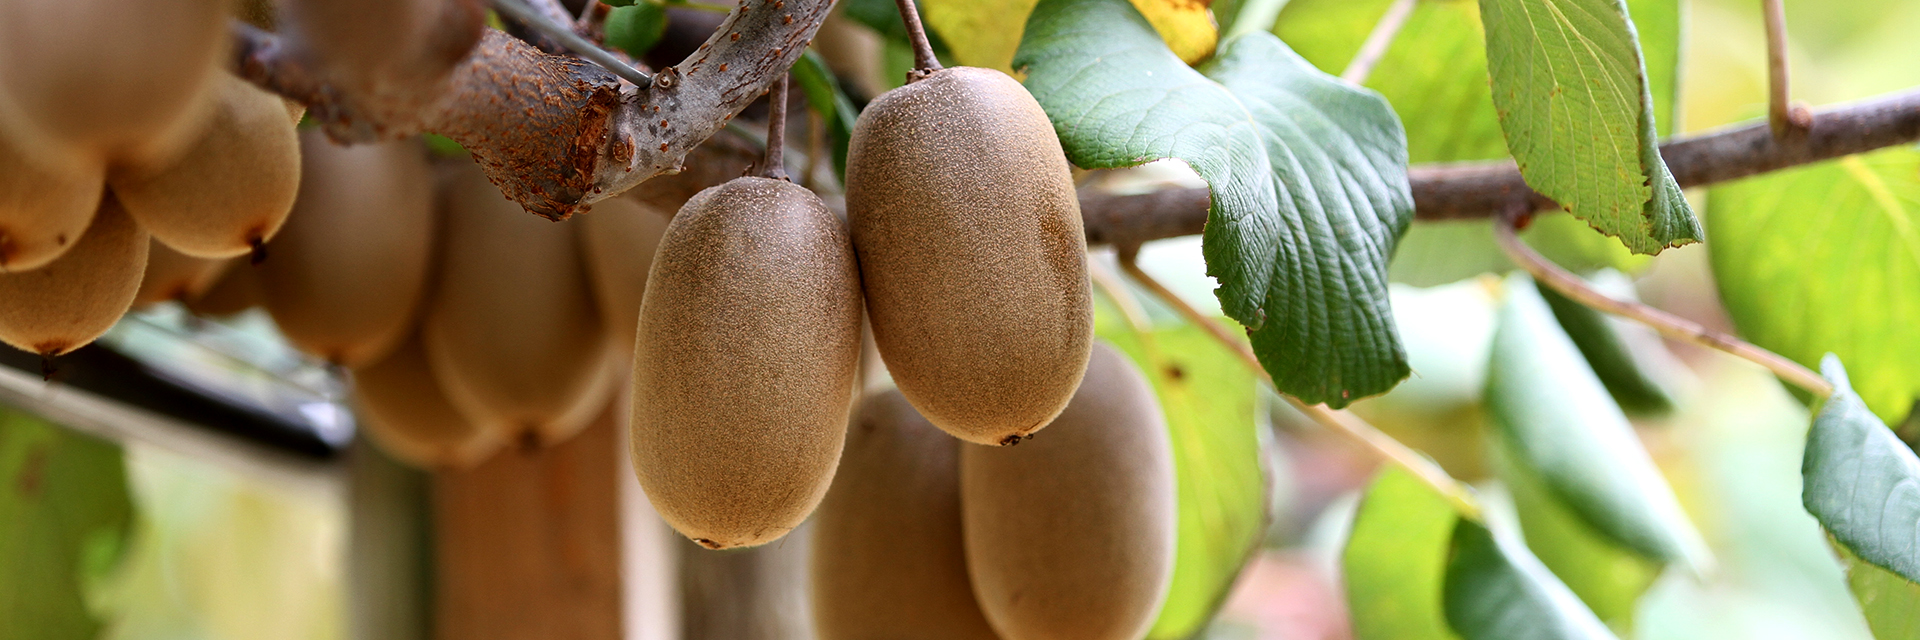 Kiwi-Fruit-Bunches-hanging-from-vine-with-green-leaves-on-Alabama-Farm-Horticulture-Fruit-Vegetable-Production-Major-4126-sm